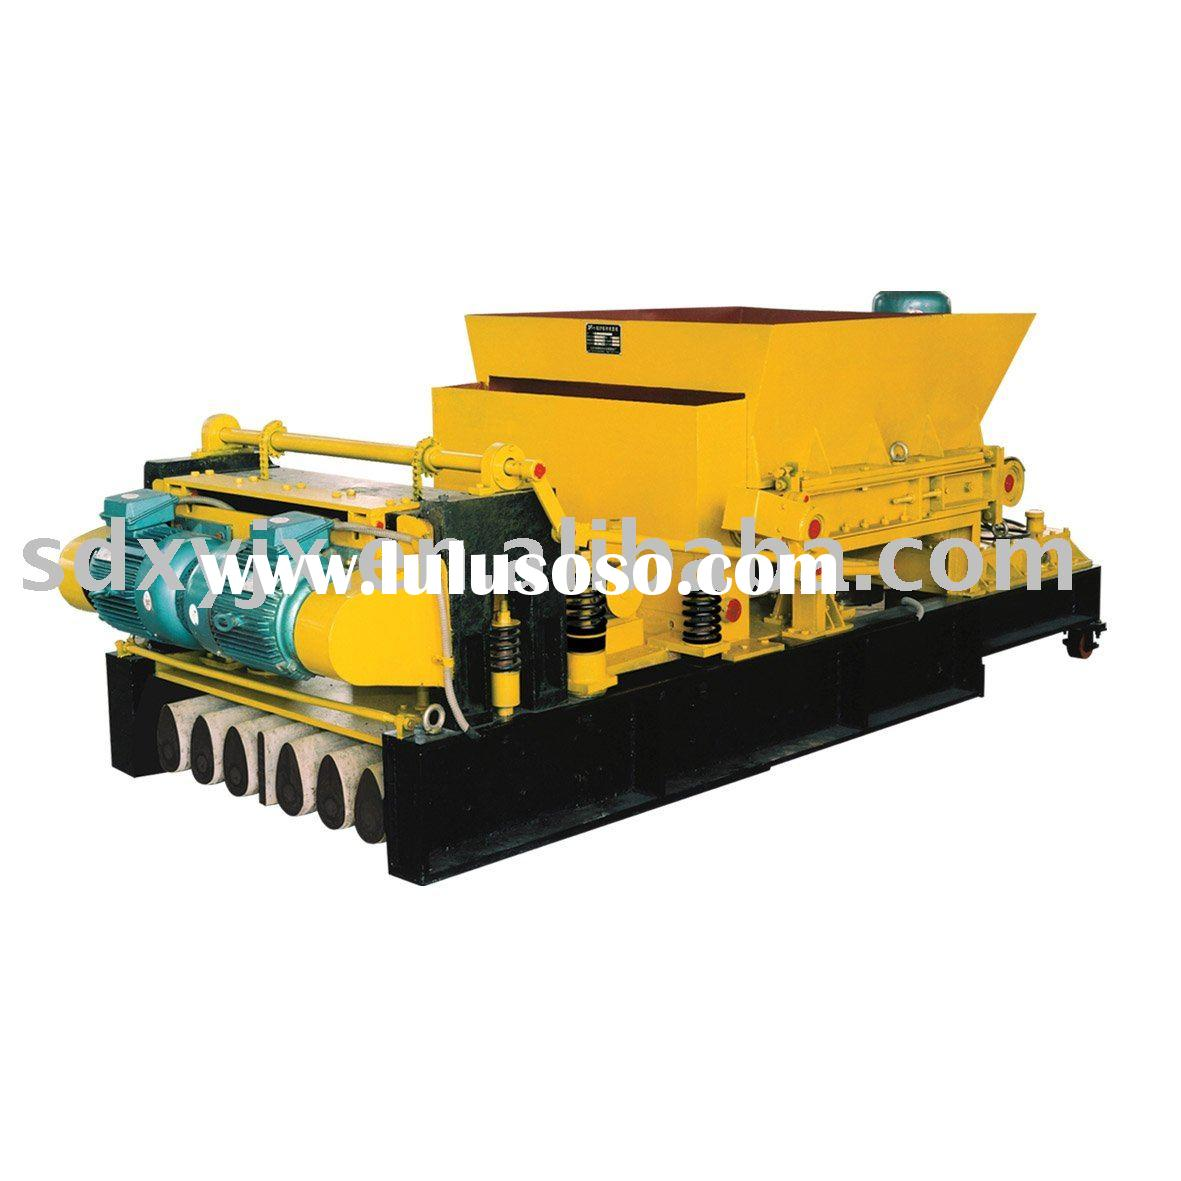 Precast Prestressed Concrete Hollow Cored Floor Slab/Wall plate machine(GLY)